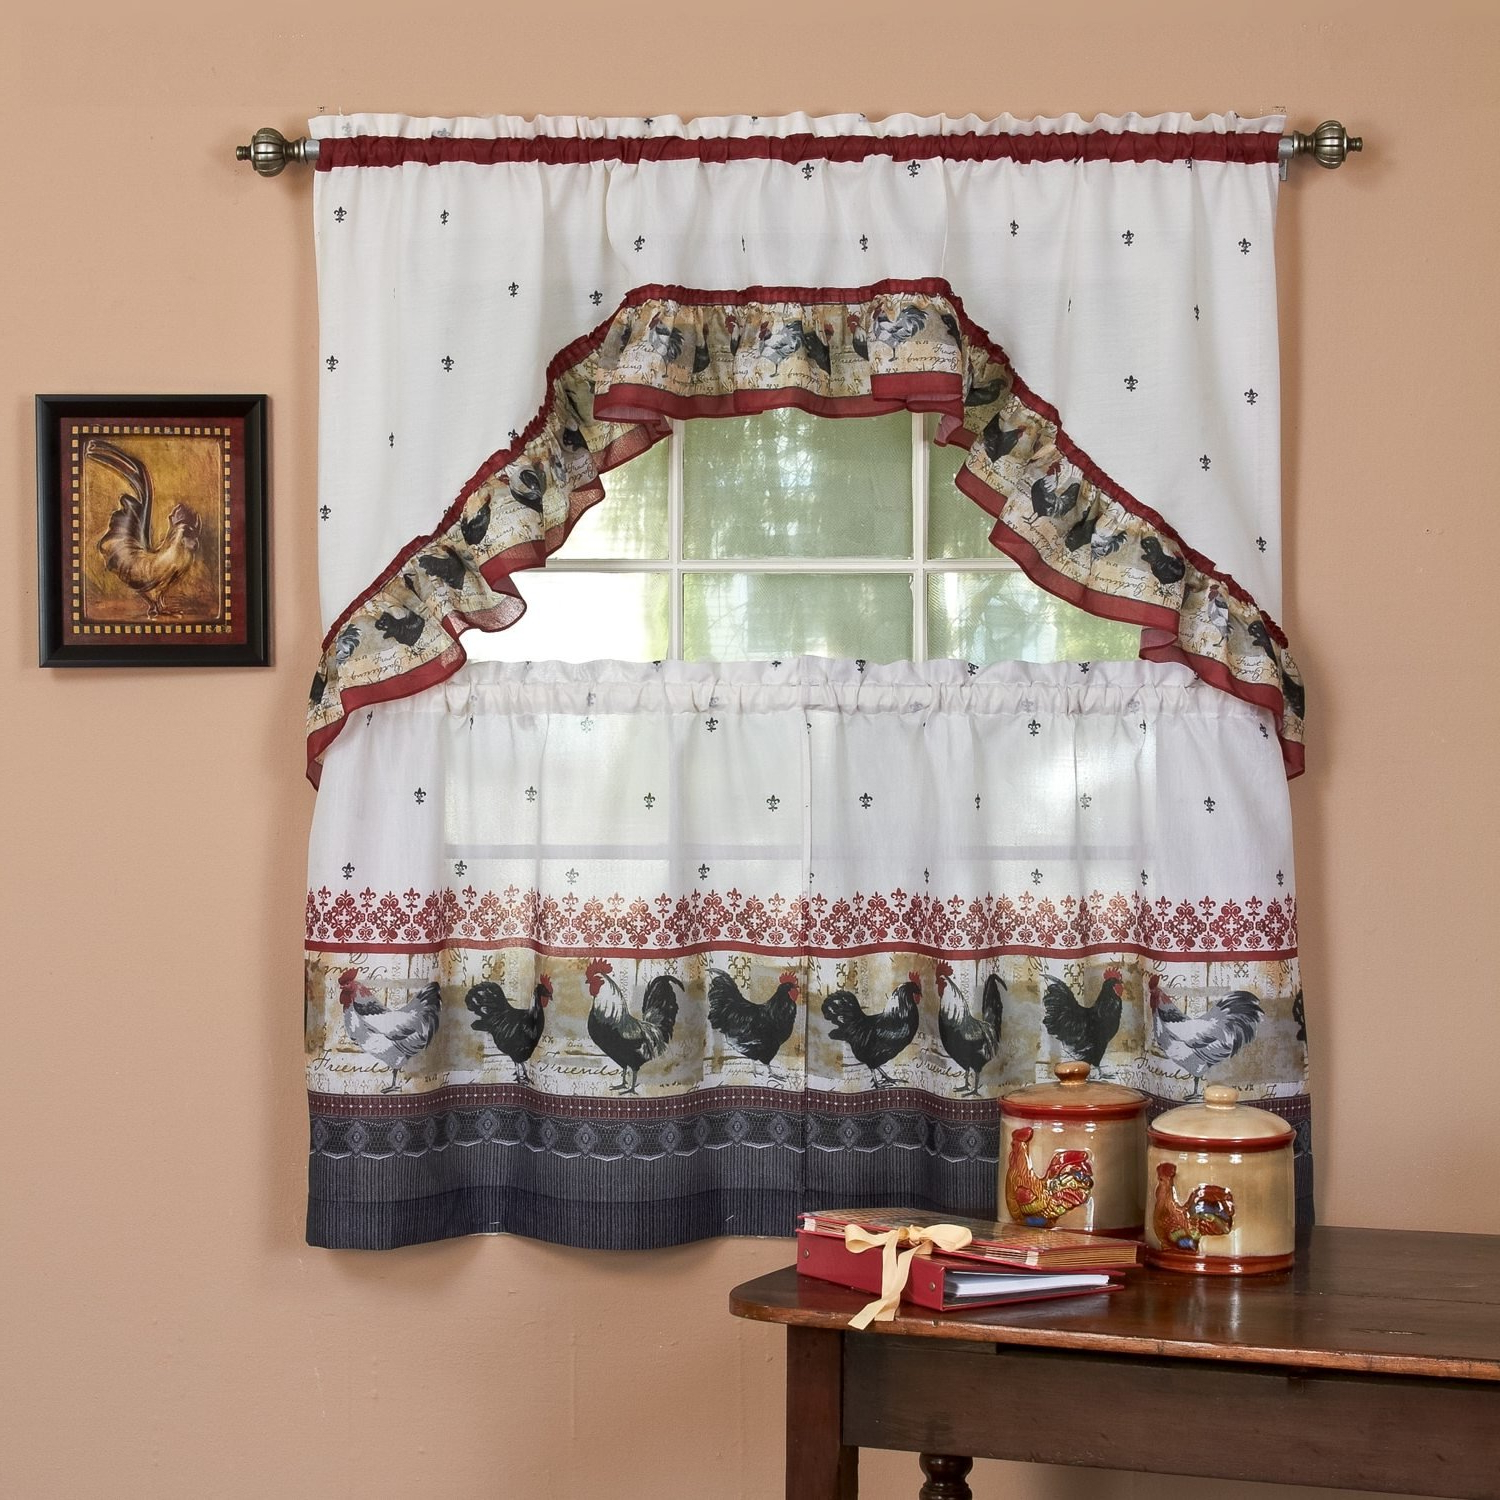 Widely Used Traditional Tailored Tier And Swag Window Curtains Sets With Ornate Flower Garden Print Pertaining To Amazon: 3 Piece Burgundy Grey Ornate Rooster Kitchen (View 10 of 20)